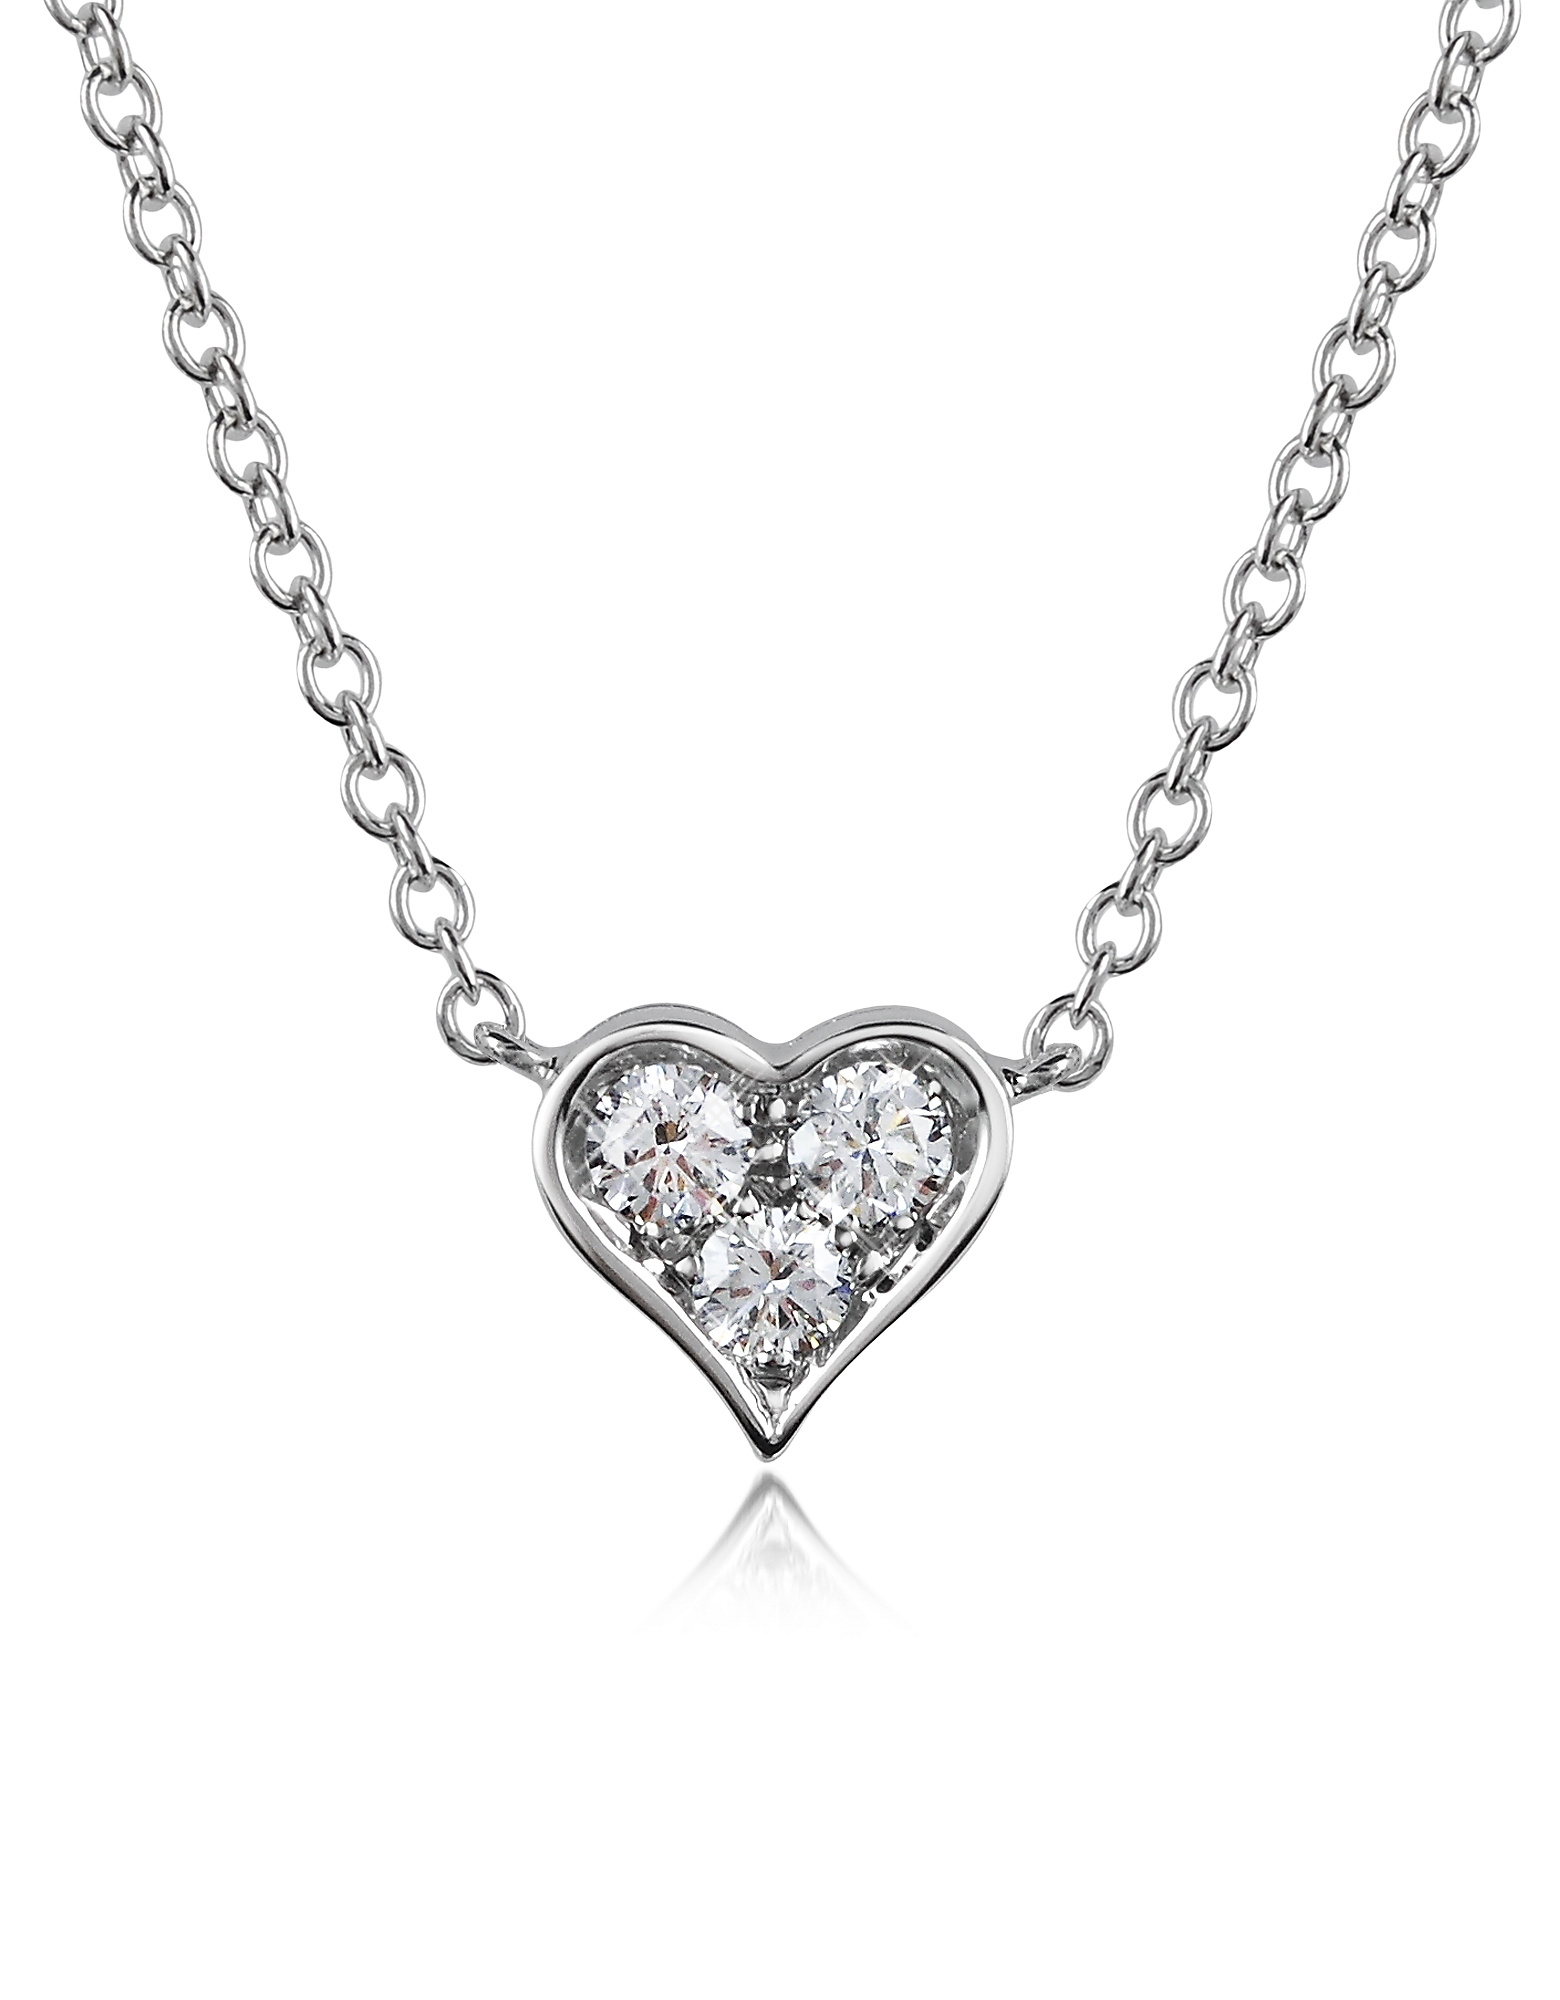 Forzieri Necklaces, 0.31 ct Diamond Heart Pendant Necklace